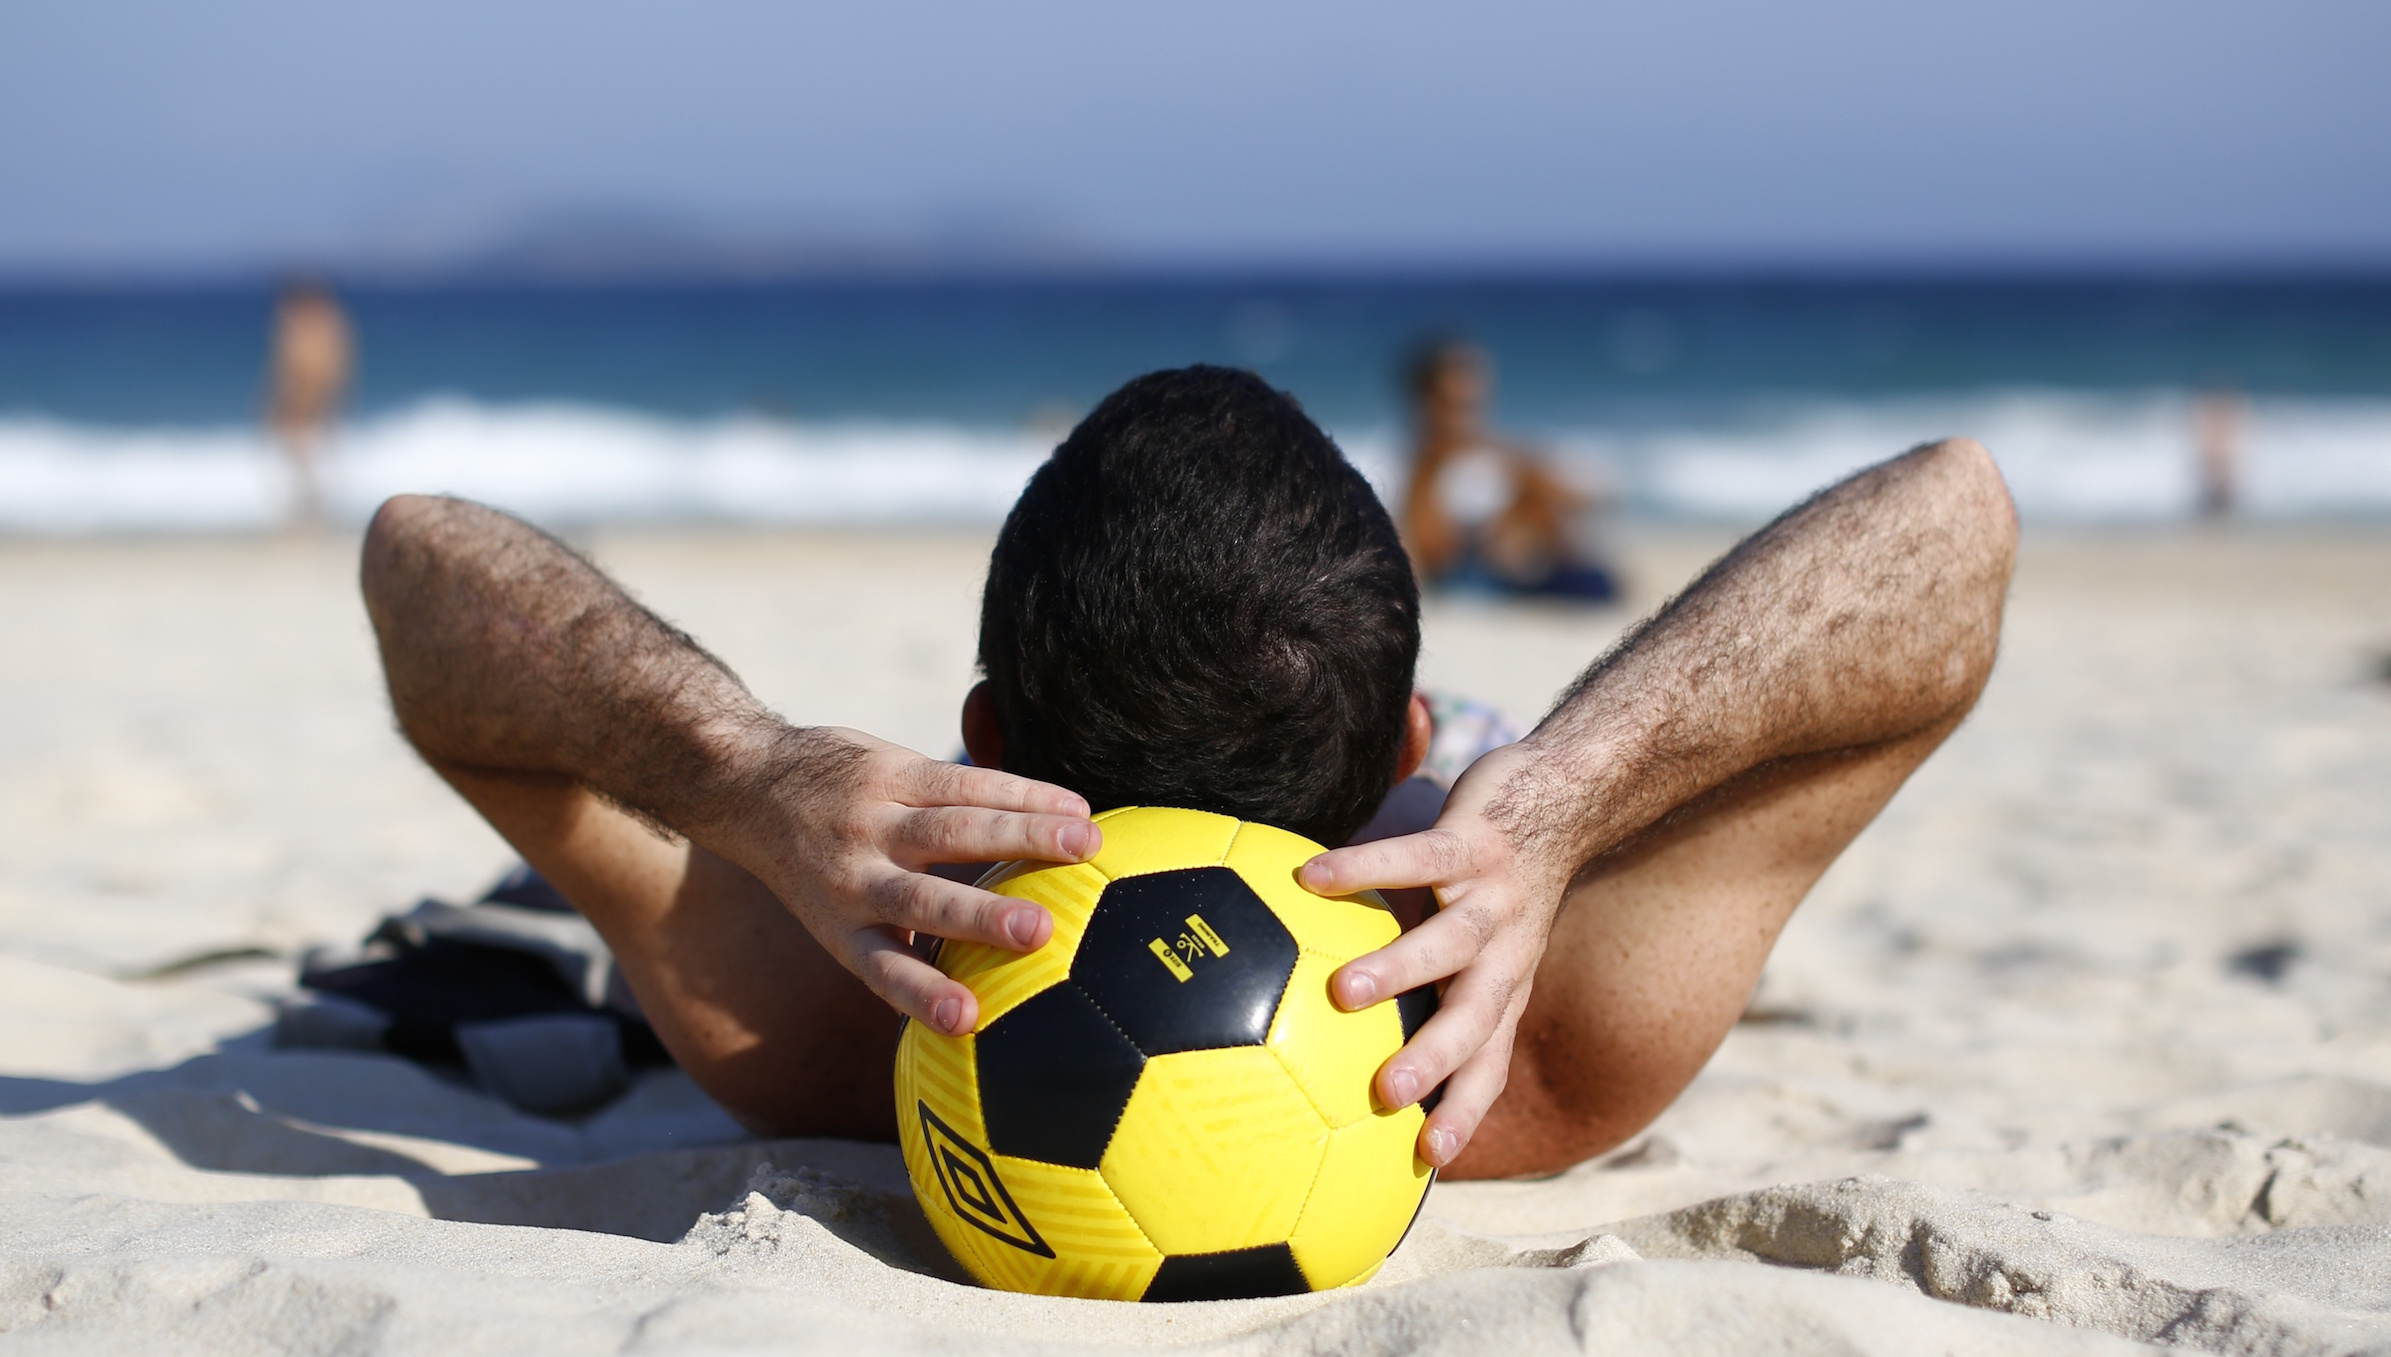 A man takes a nap over a soccer ball at Ipanema beach in Rio de Janeiro June 9, 2014. In a project called 'OnThe Sidelines' Reuters photographers share pictures showing their own quirky and creative view of the 2014 World Cup in Brazil.     REUTERS/Jorge Silva (BRAZIL)   - RTR3SY88